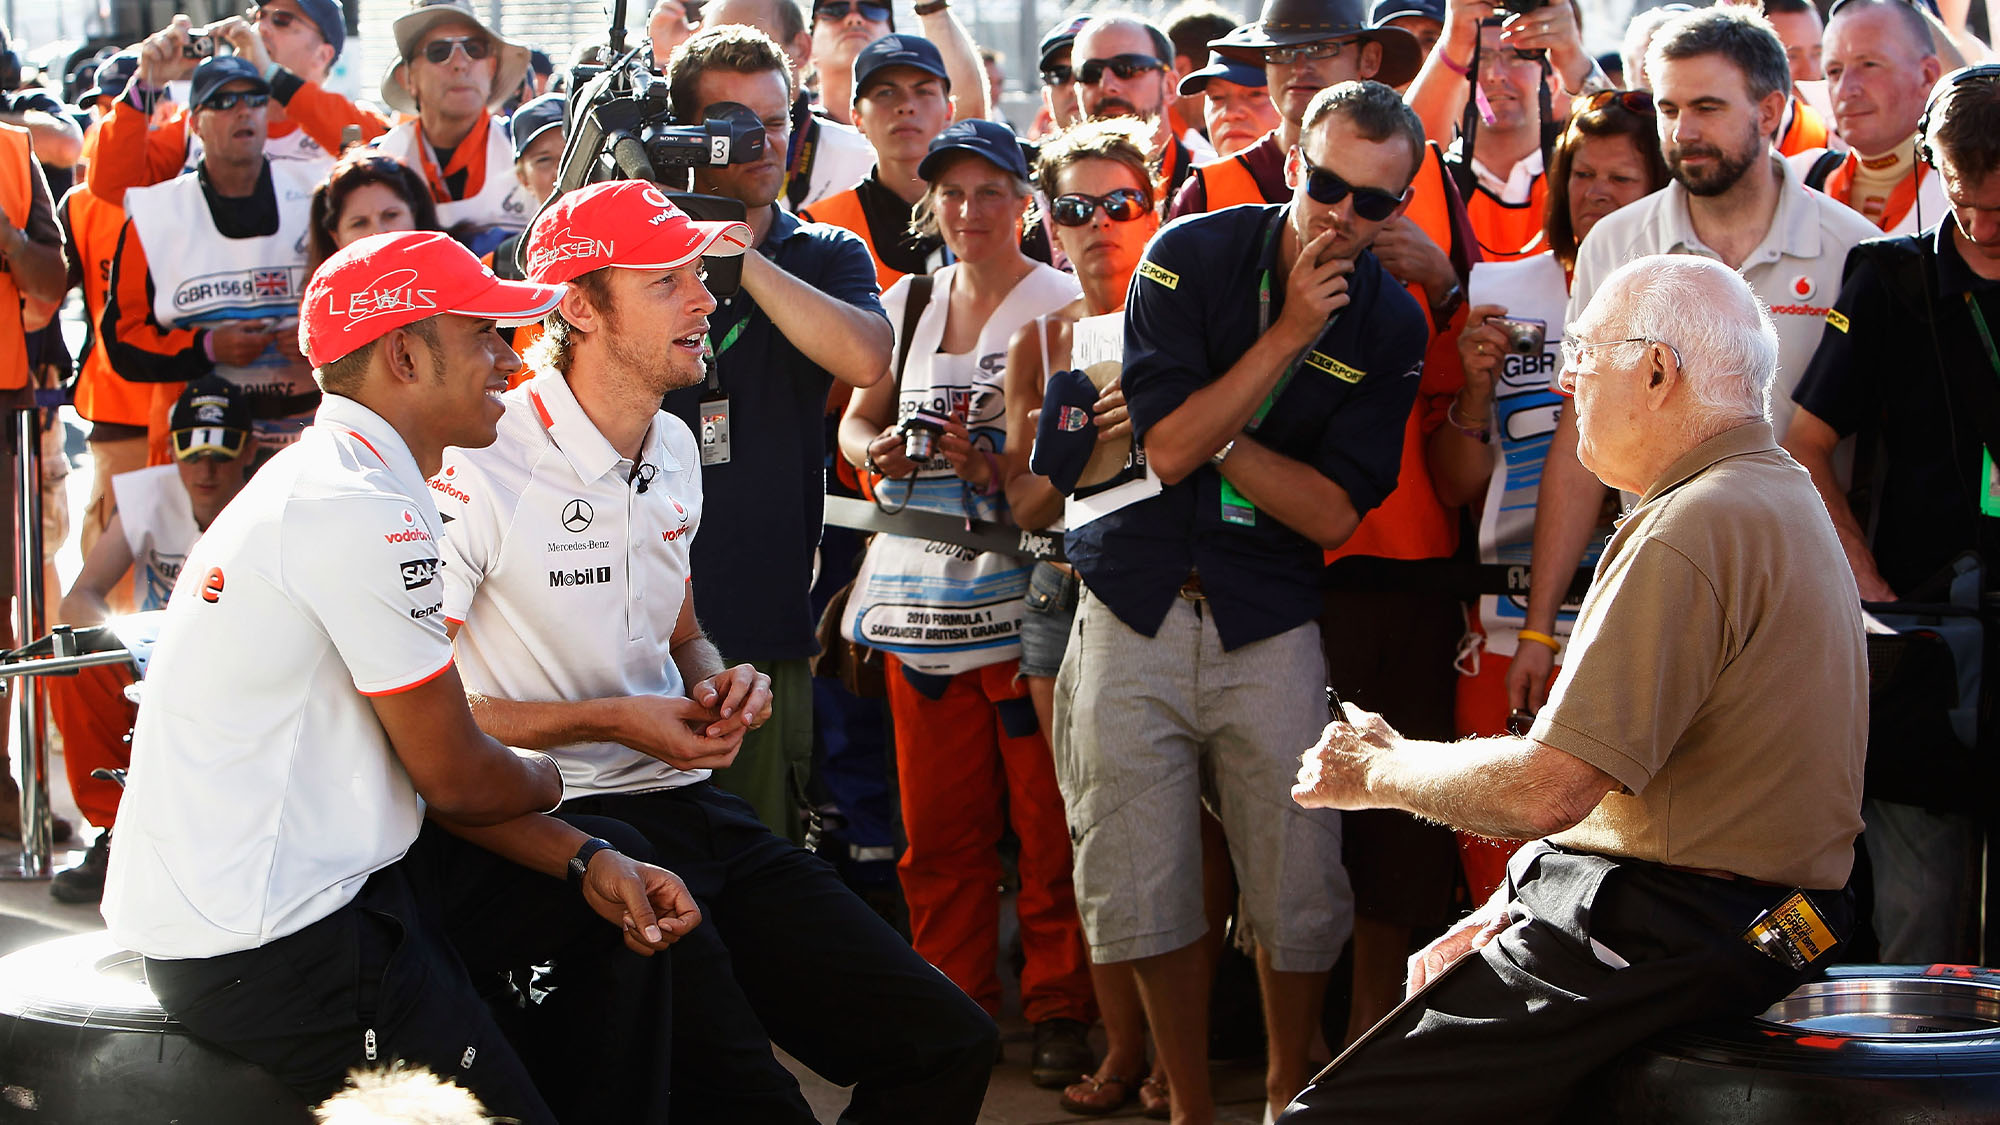 NORTHAMPTON, UNITED KINGDOM - JULY 10: Lewis Hamilton of Great Britain and McLaren Mercedes and Jenson Button of Great Britain and McLaren Mercedes are interviewed by Murray Walker following qualifying for the British Formula One Grand Prix at Silverstone Circuit on July 10, 2010, in Northampton, England. (Photo by Hoch Zwei/Getty Images)